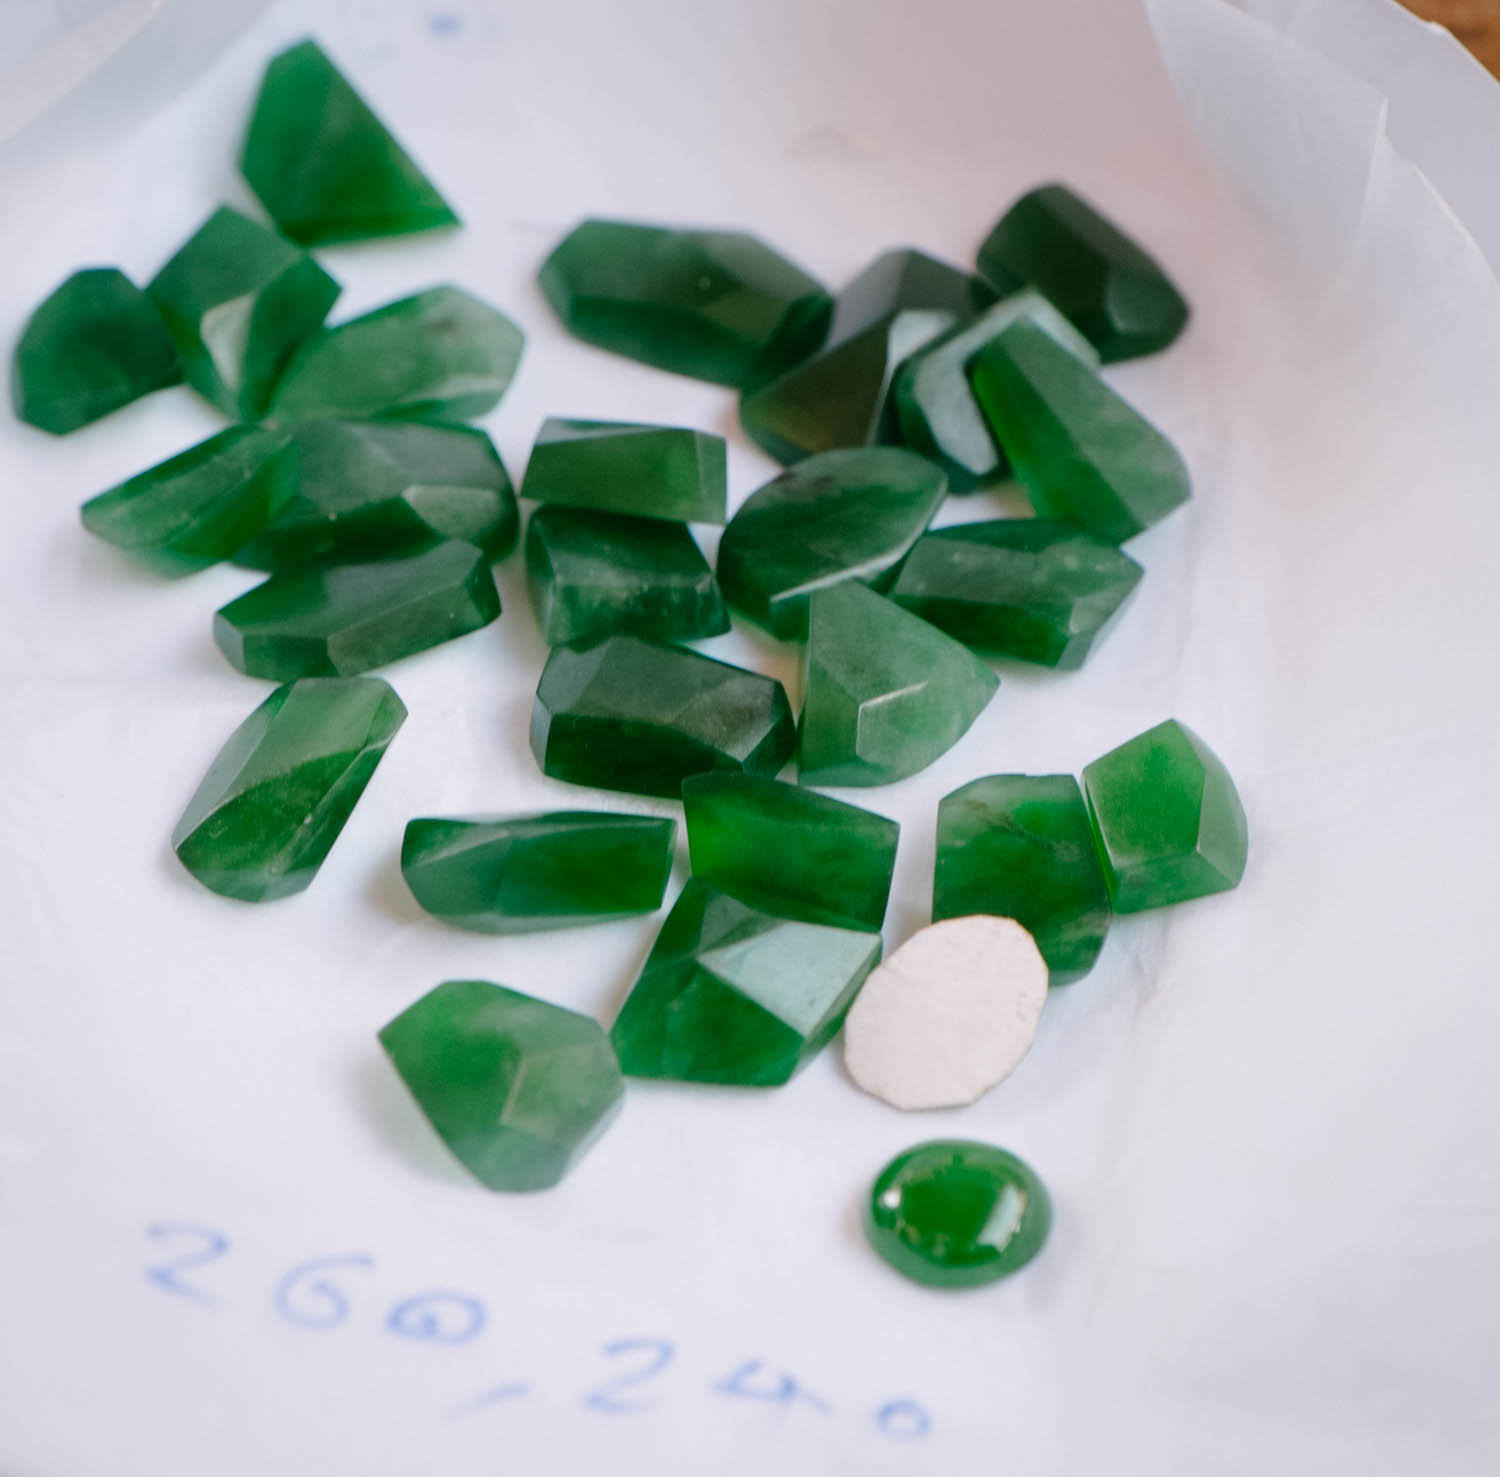 More of the good stuff. Love imperial jade rough. Though as you can see from the price - it doesn't come cheap.